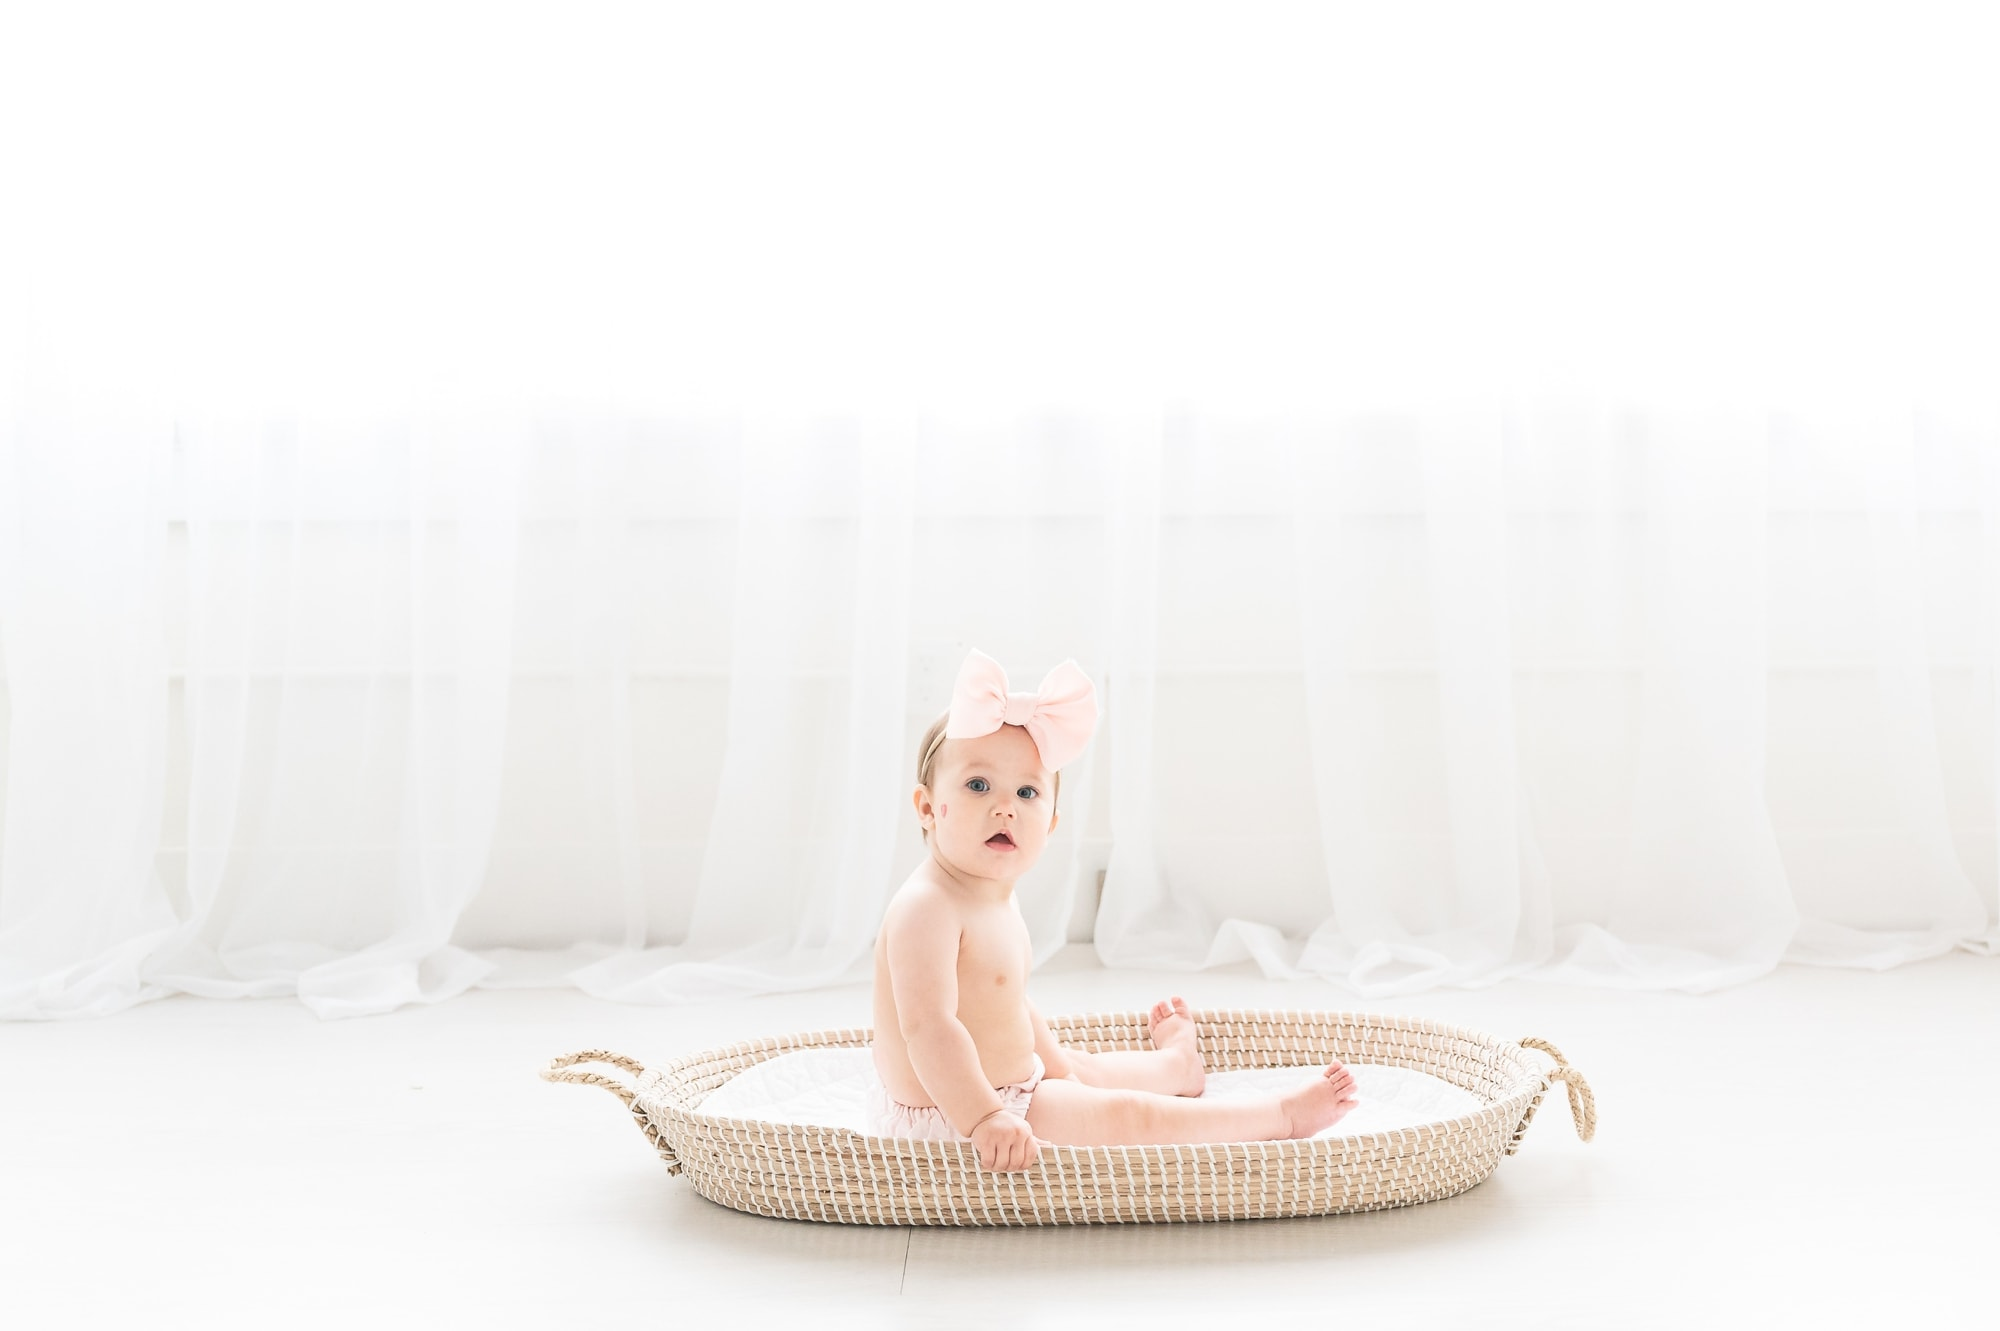 6 month old photo shoot with baby sitting in Moses basket in studio. Photo by Aimee Hamilton Photography